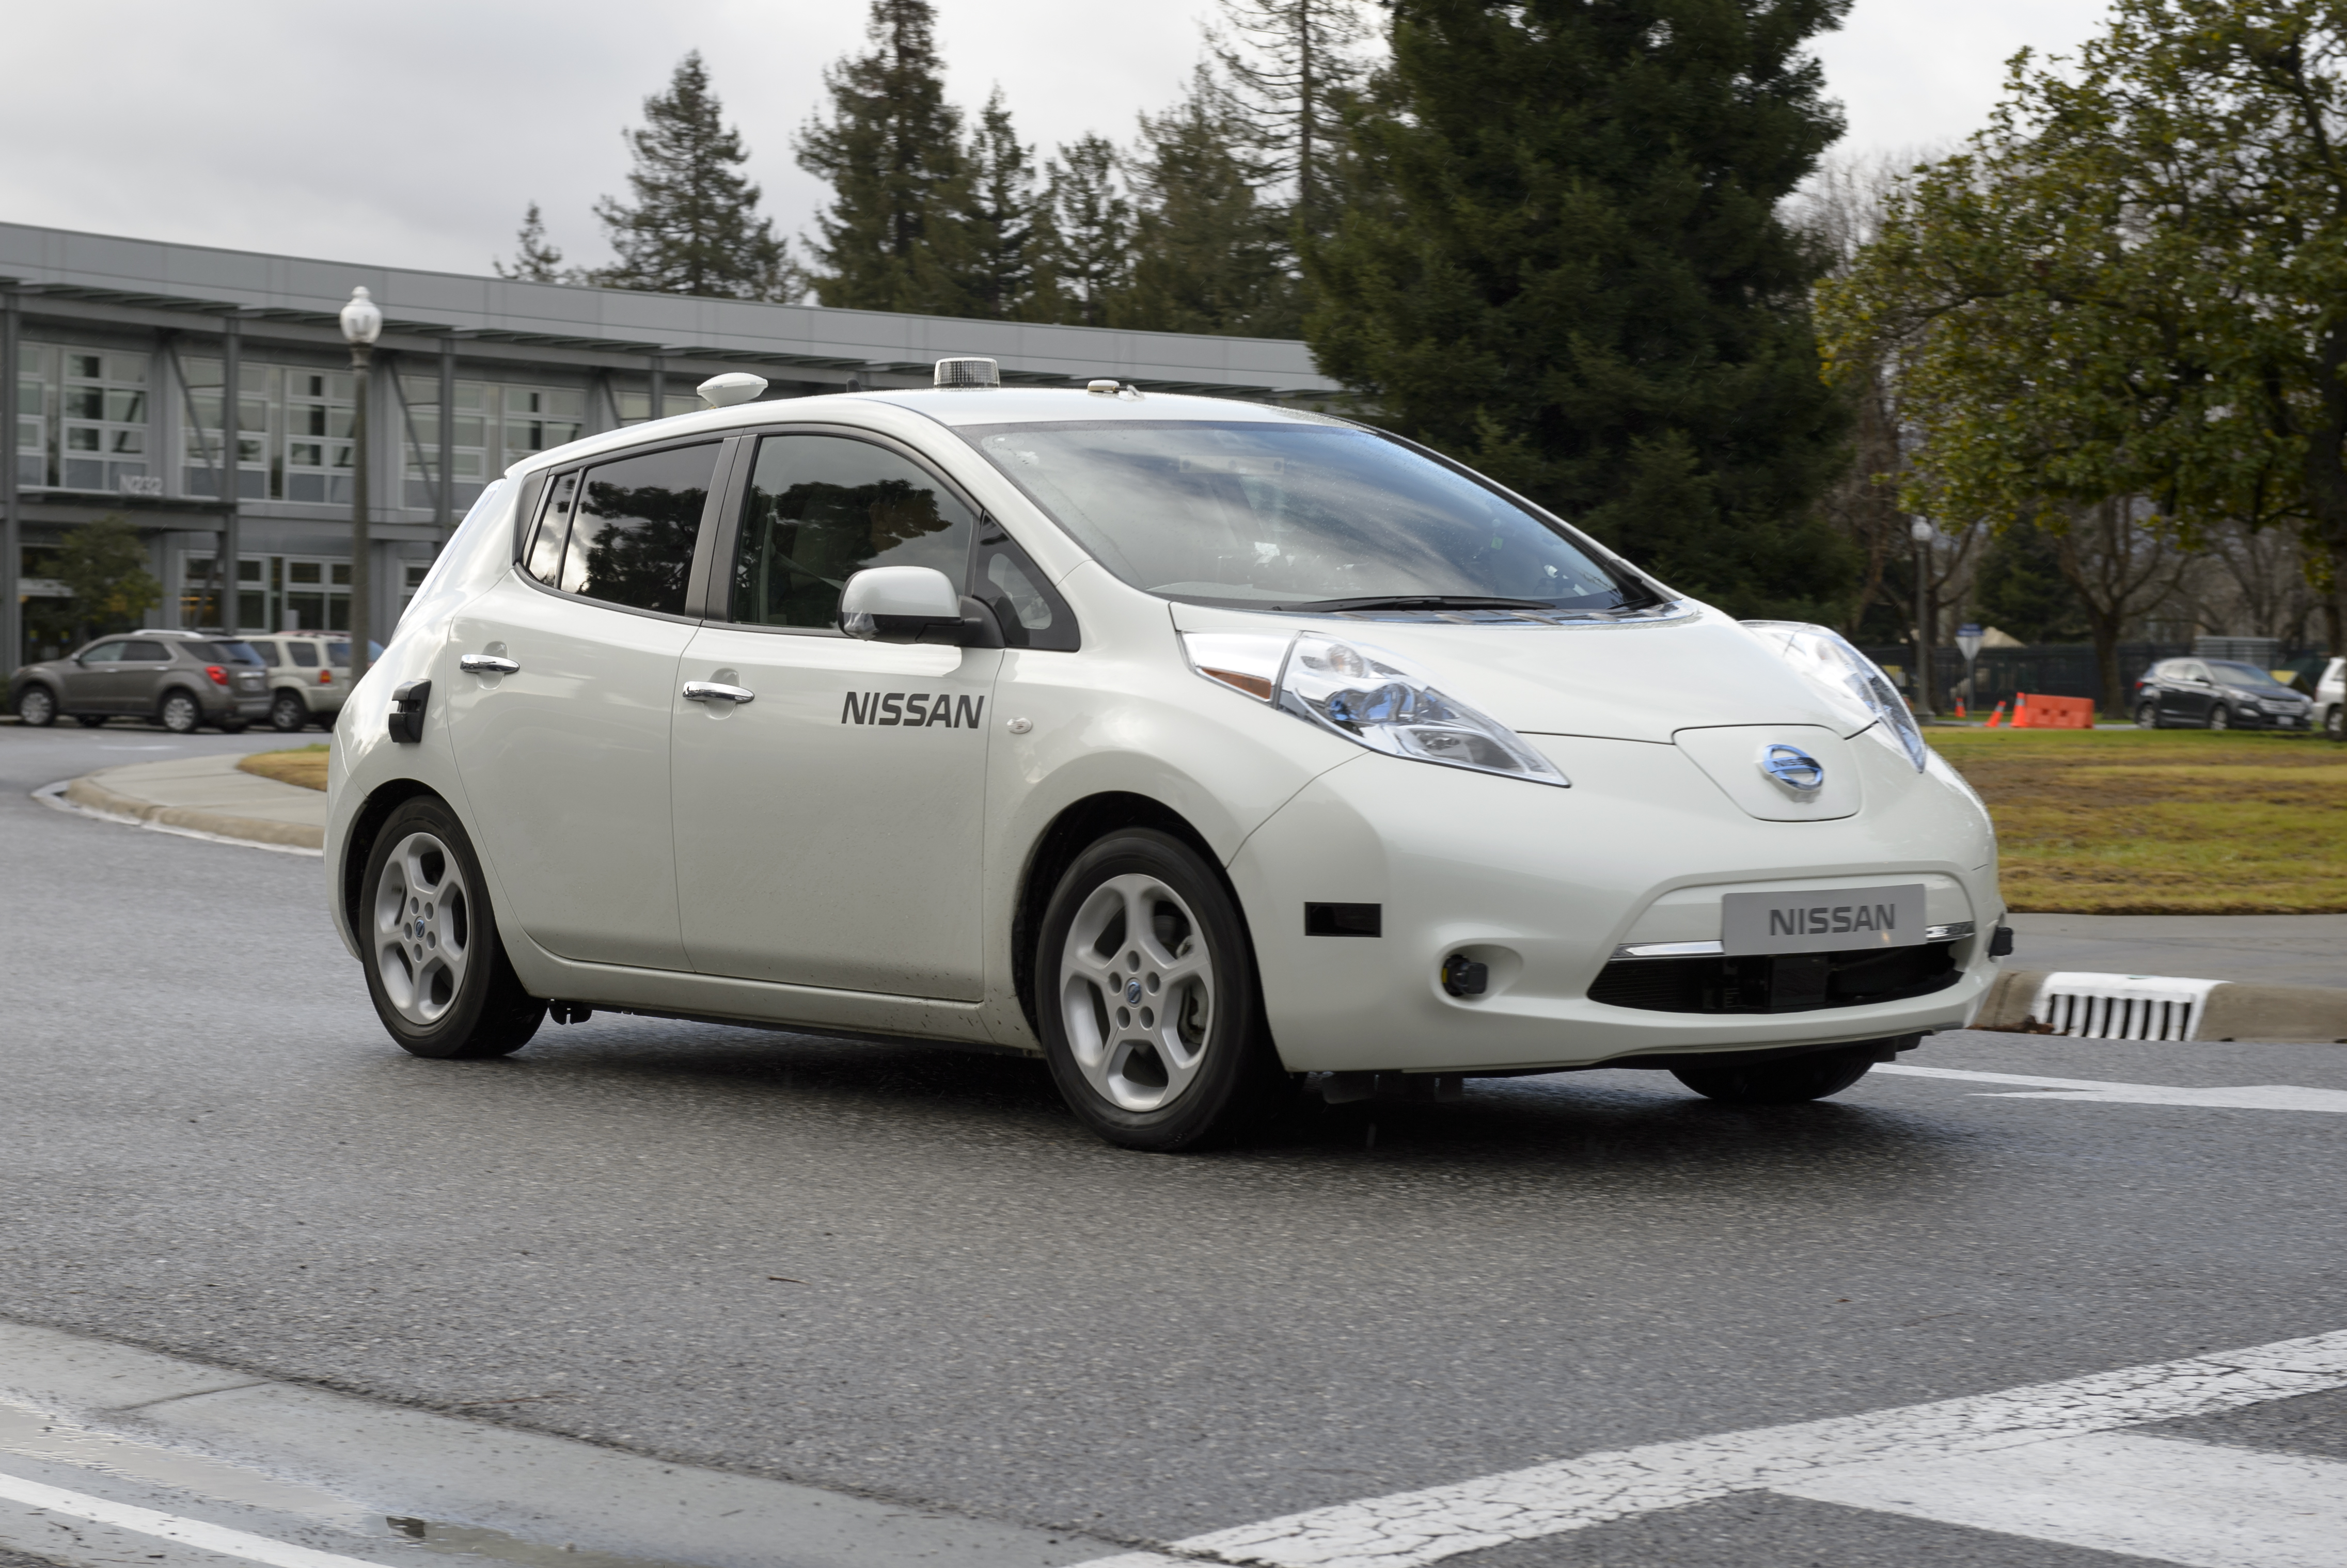 dims can turn cars gm recently security remote climate to leafs aolcdn be online reports update found com app nissans image now hunt disables several vulnerable it nissan quality uri out connected leaf flaw a its s and troy ed has researcher that attacks control